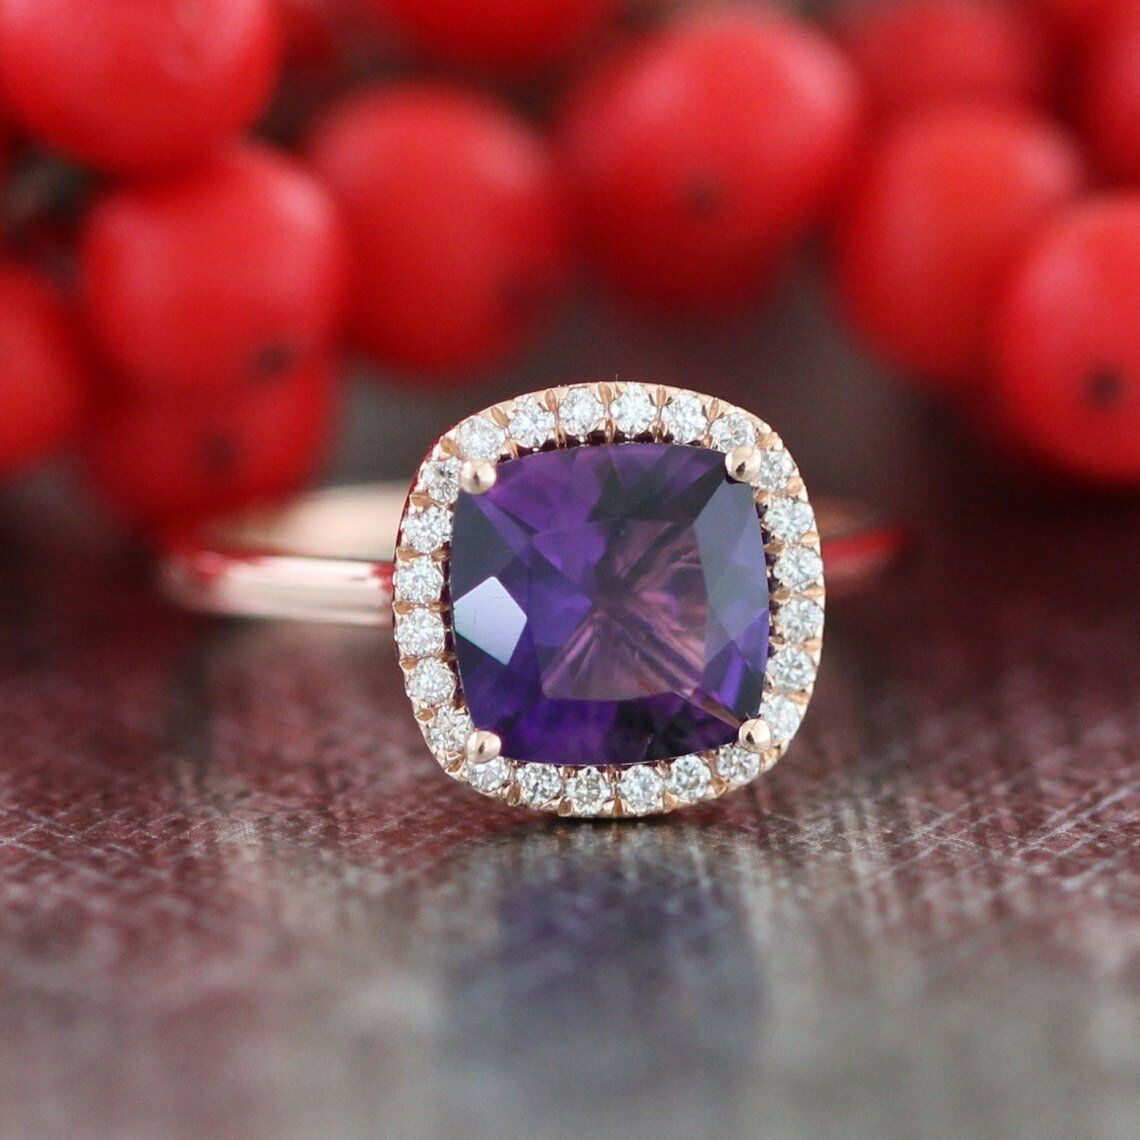 1.2ct Cushion Cut Purple Amethyst Solitaire Engagement Ring 14k pink gold Finish